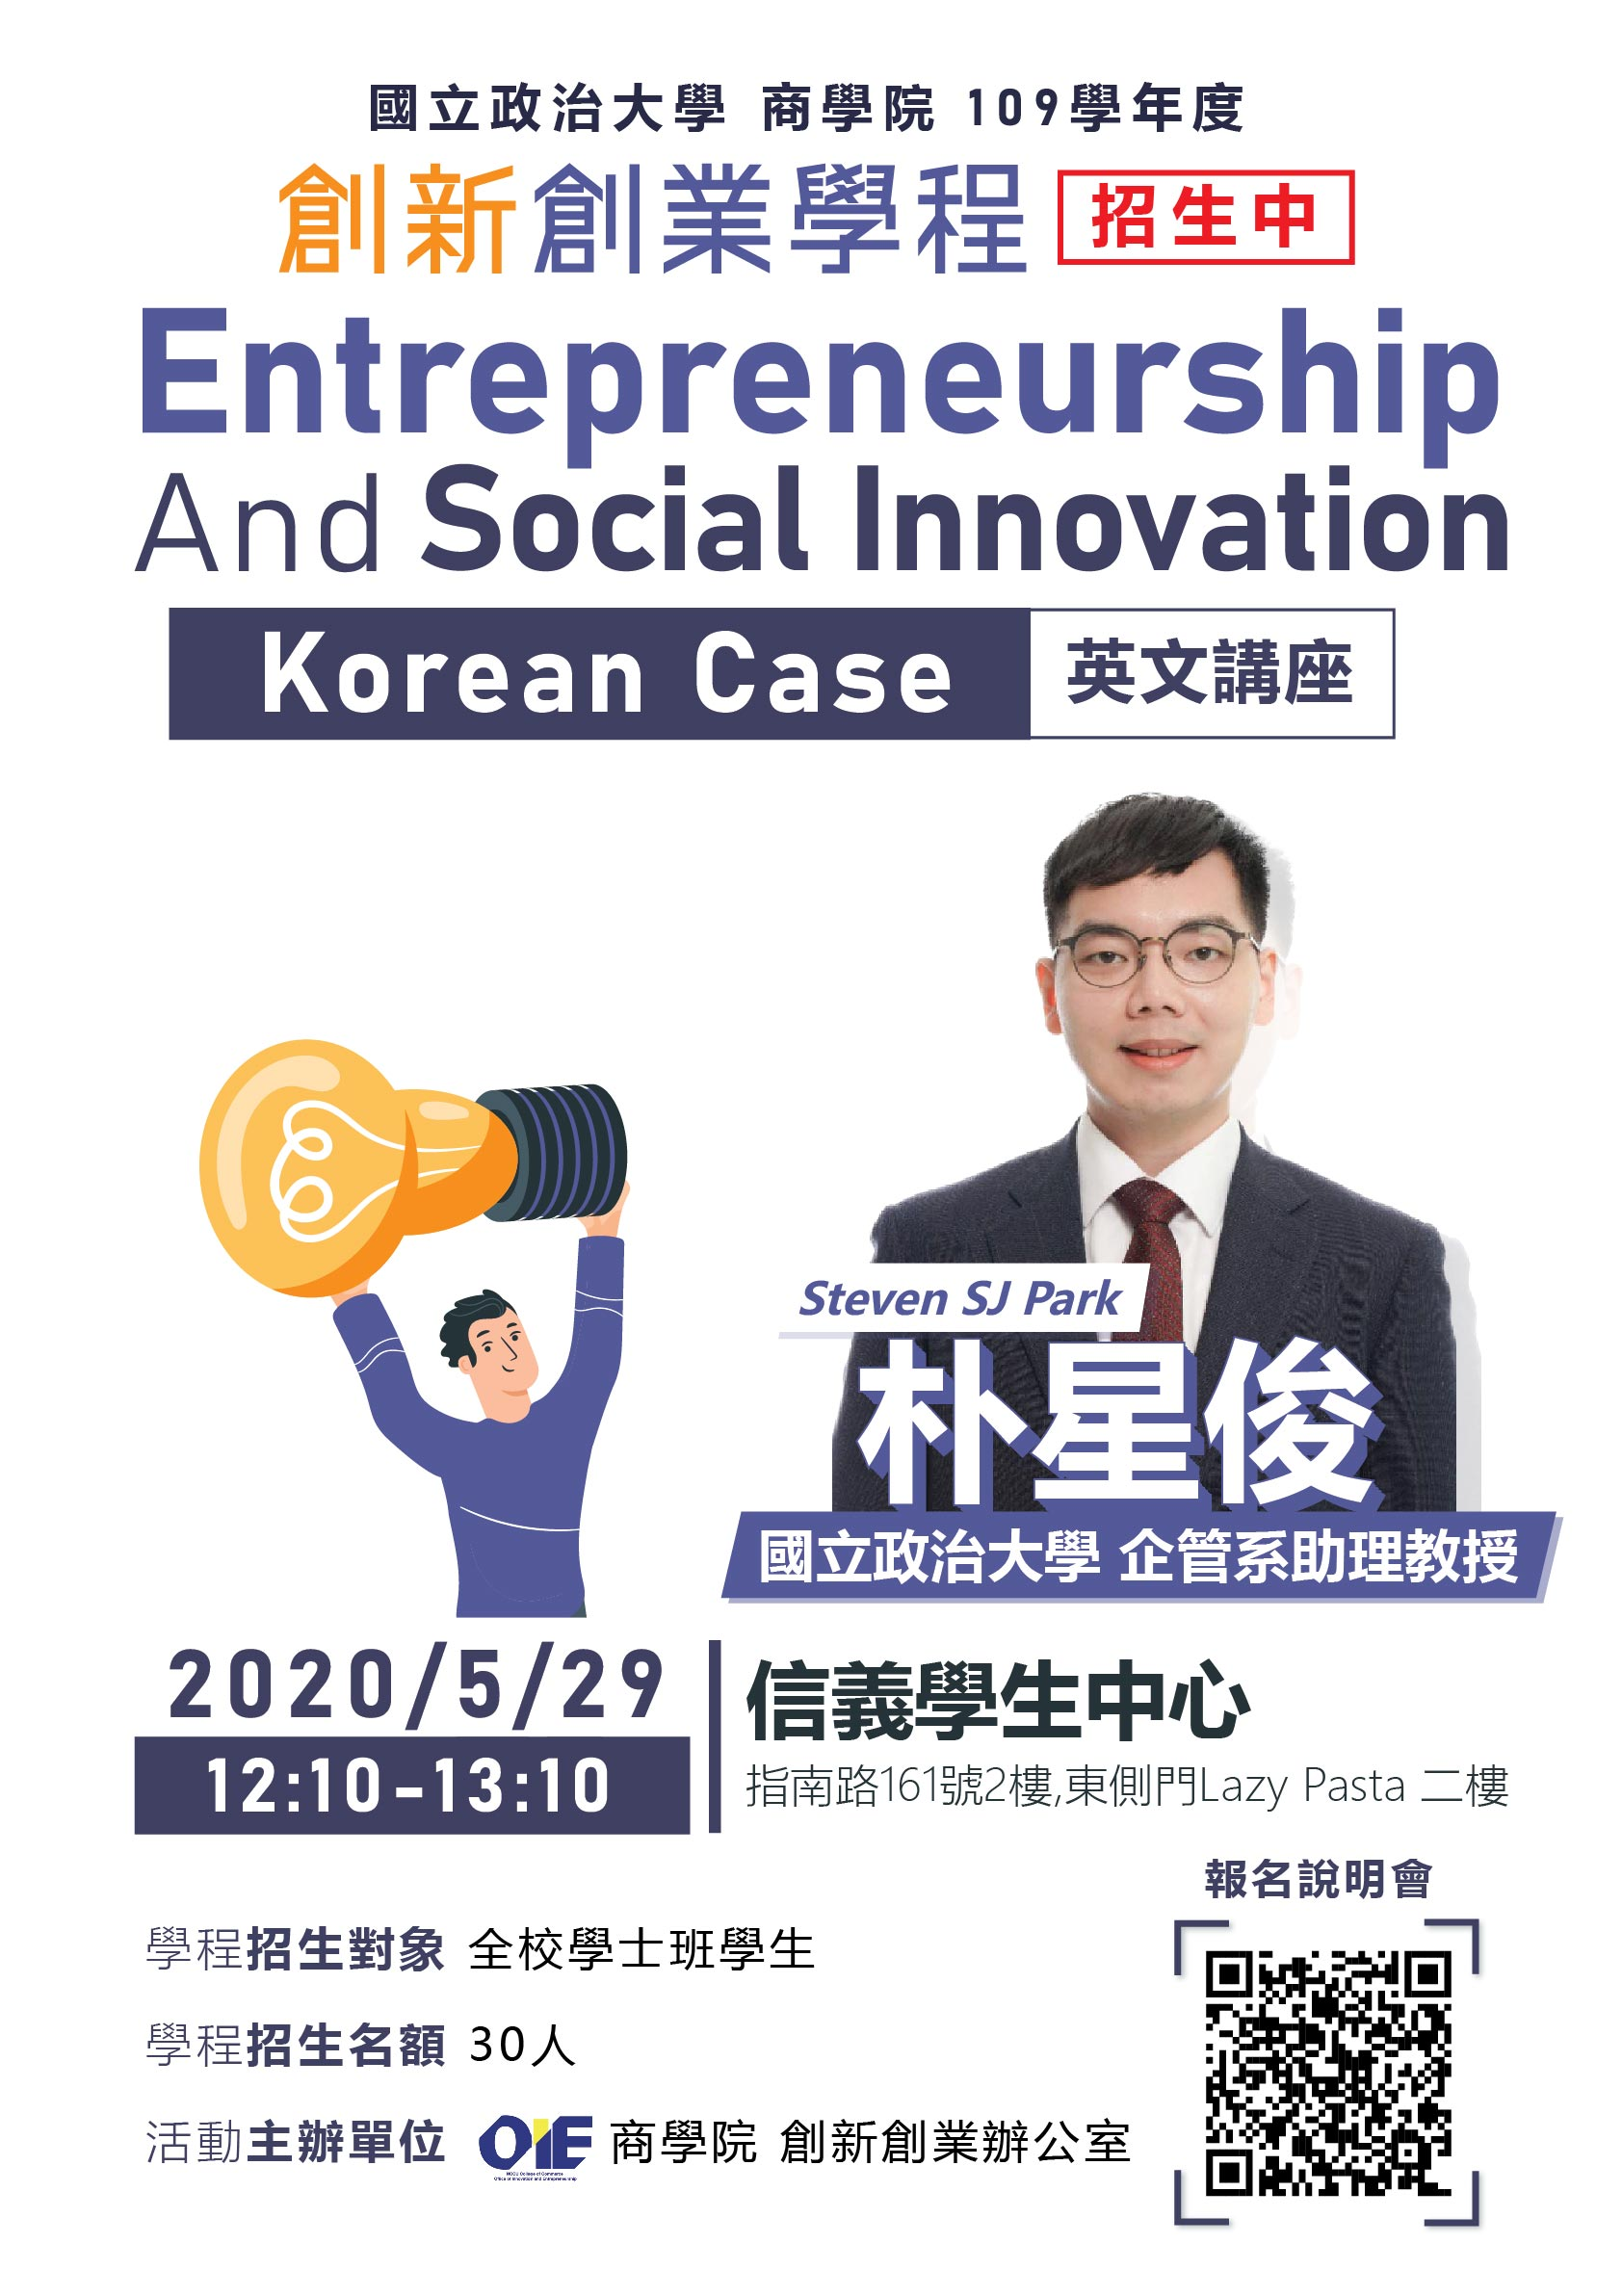 【創新創業學程】招生說明會系列三講座:Entrepreneurship And Social Innovation- Korean Case (英文場次)